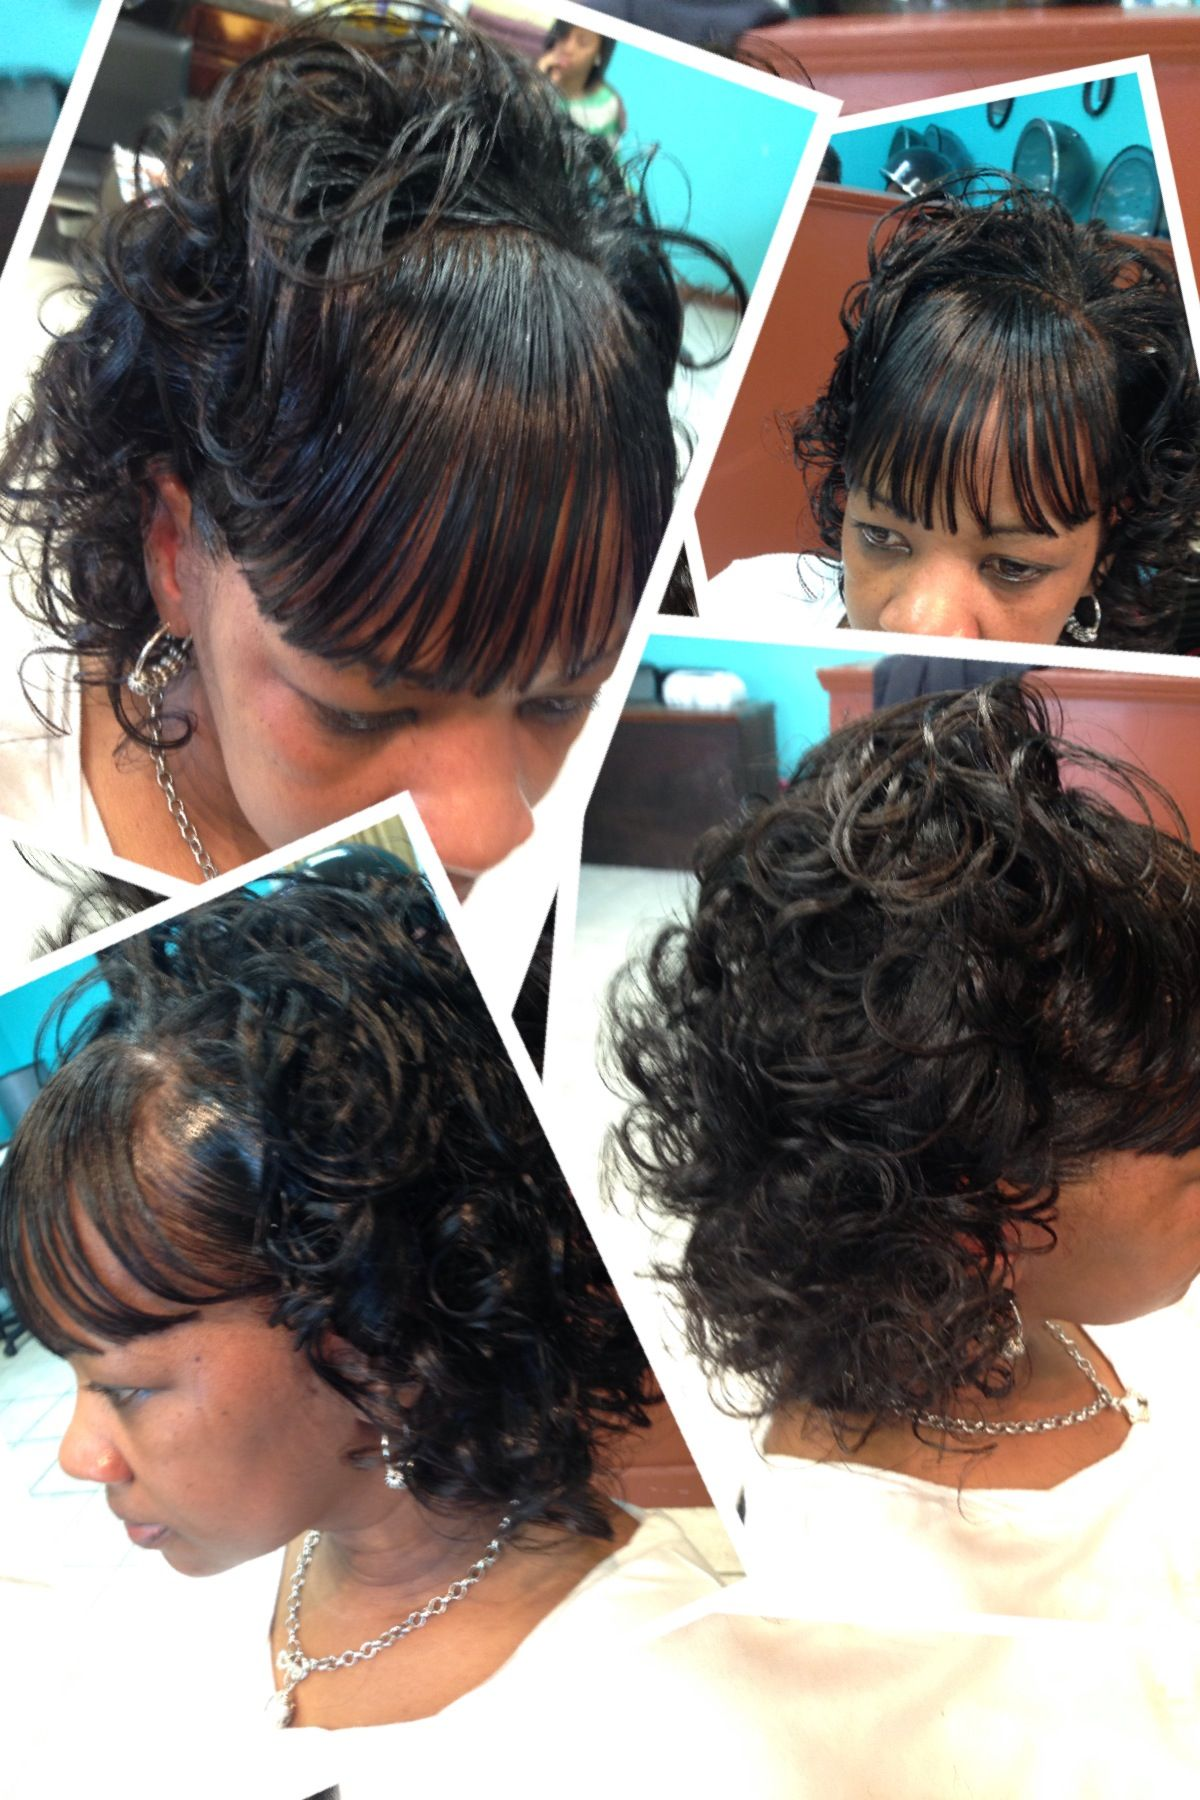 dorothy hairstyle : Tight doobie!!! Hair By Queen!!! Hair I am... Pinterest